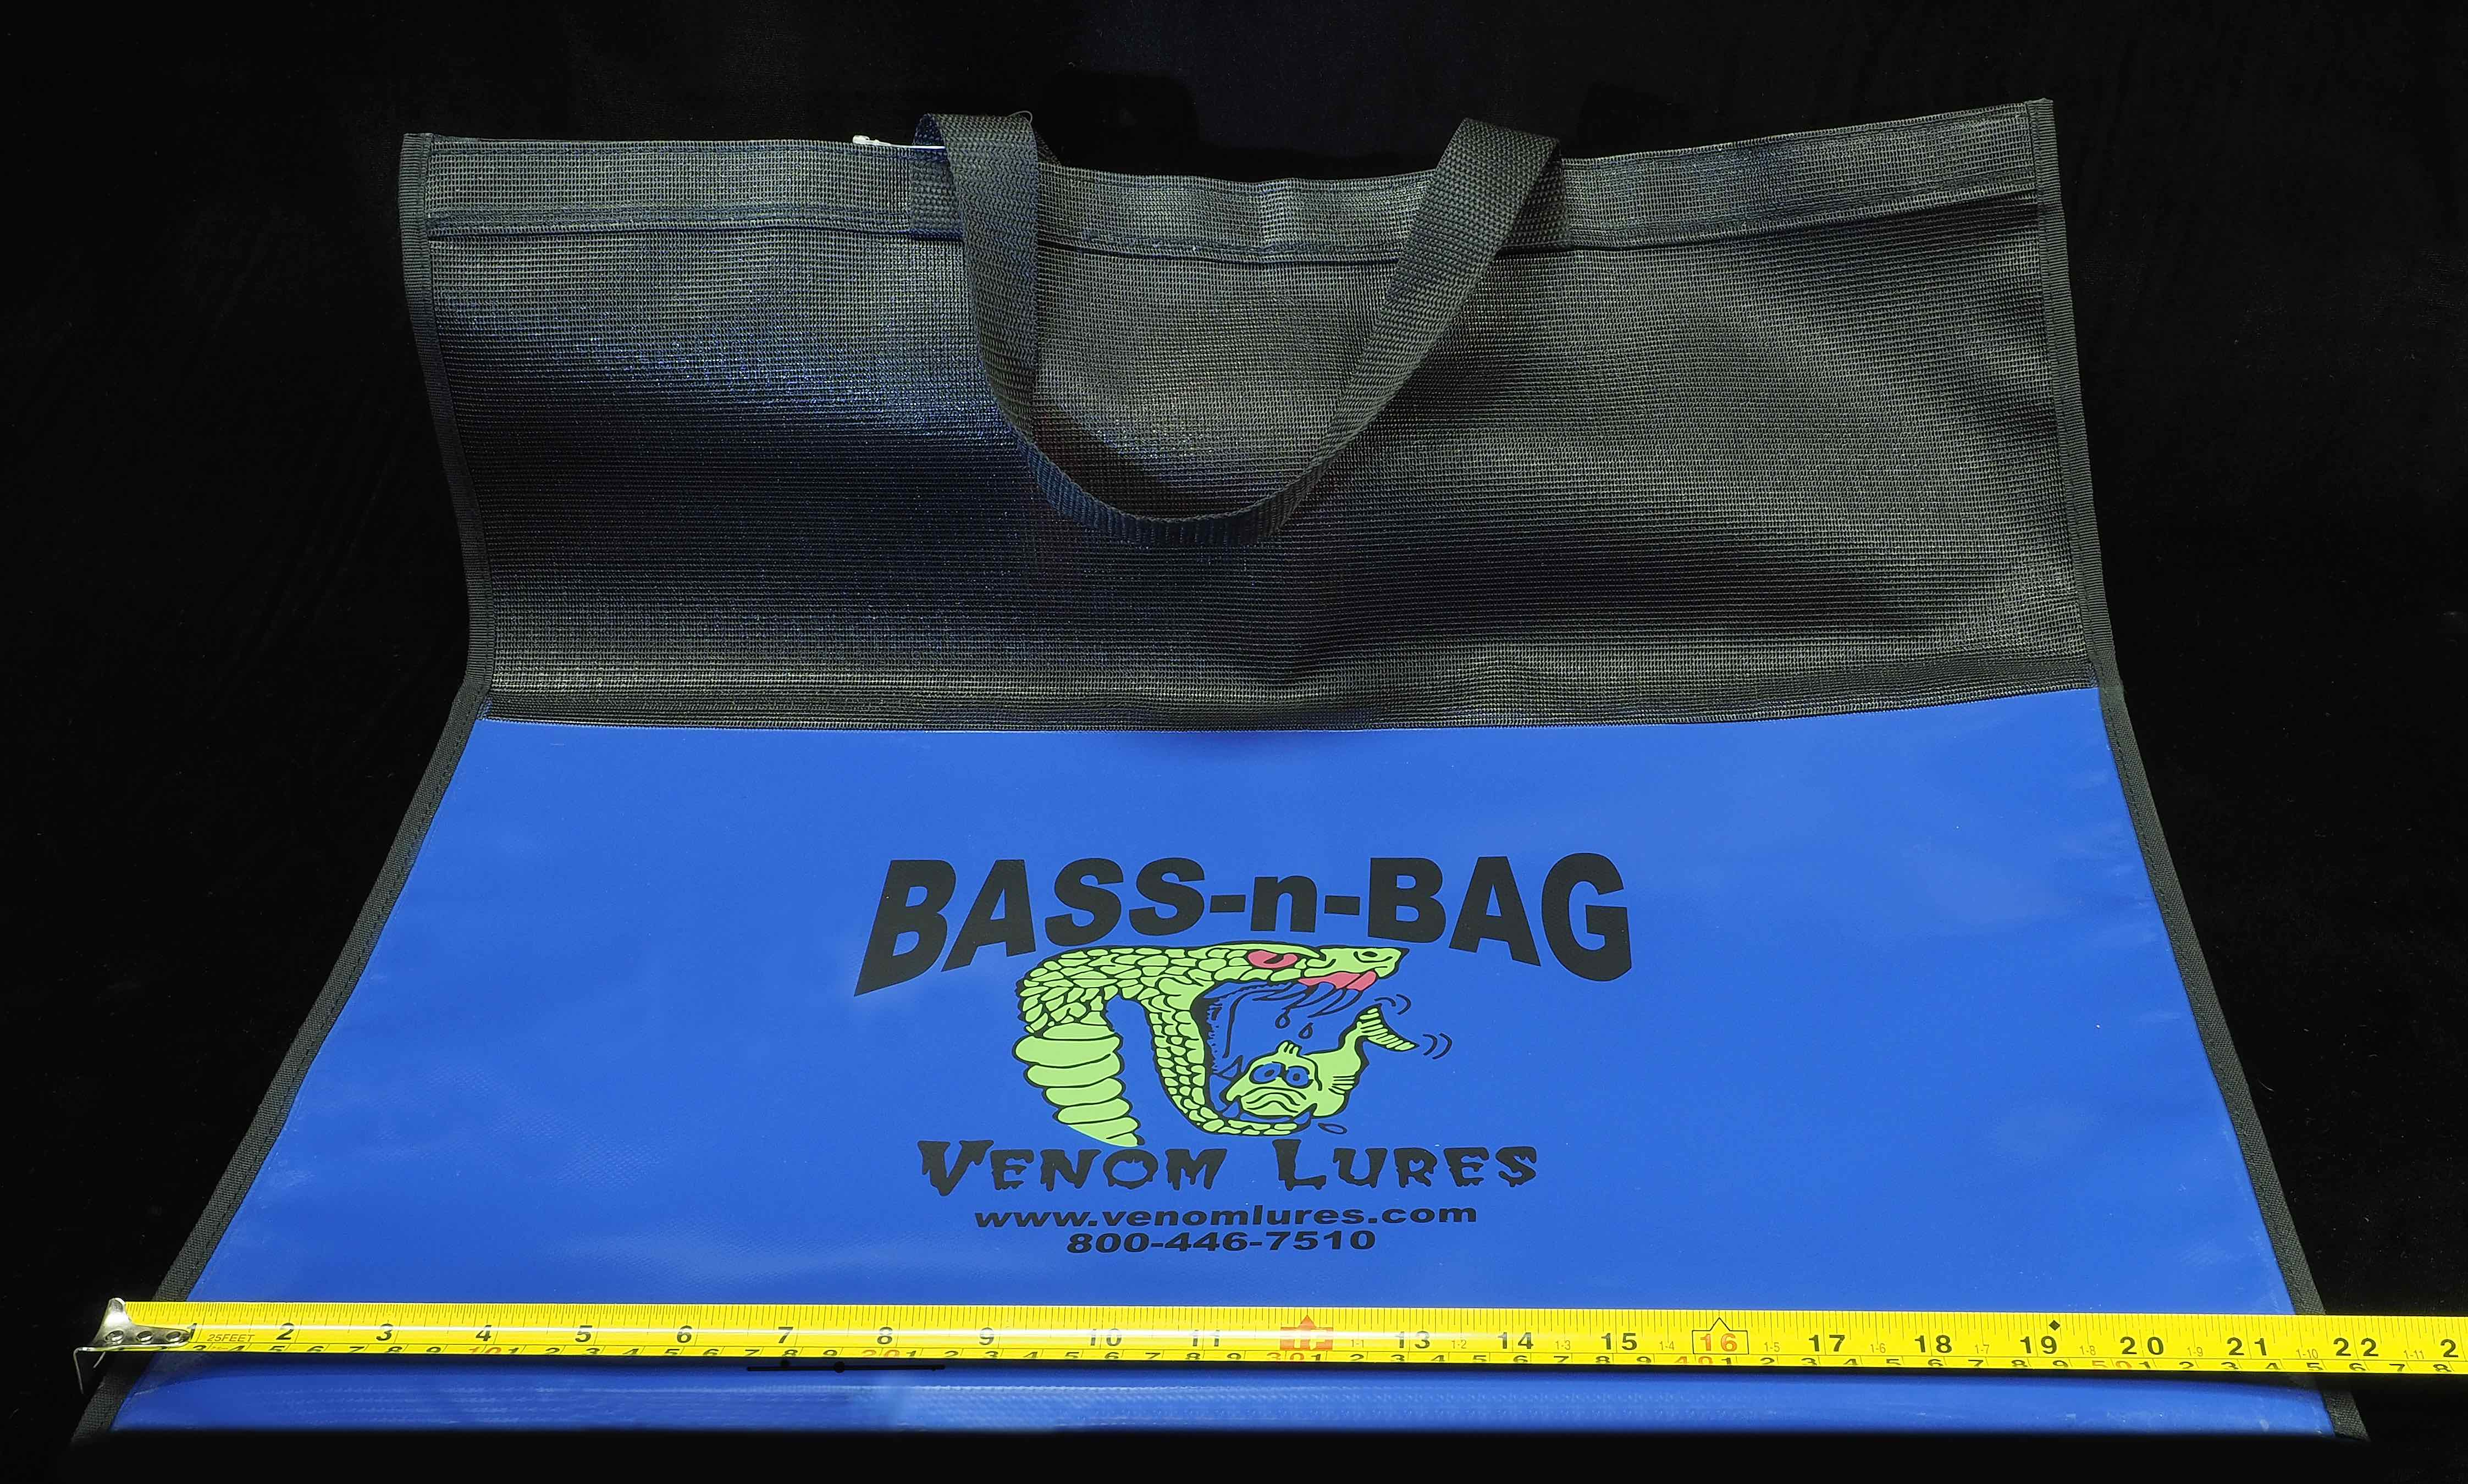 Venom Lures Bass-N-Bag Bass Tournament Weigh-Bag